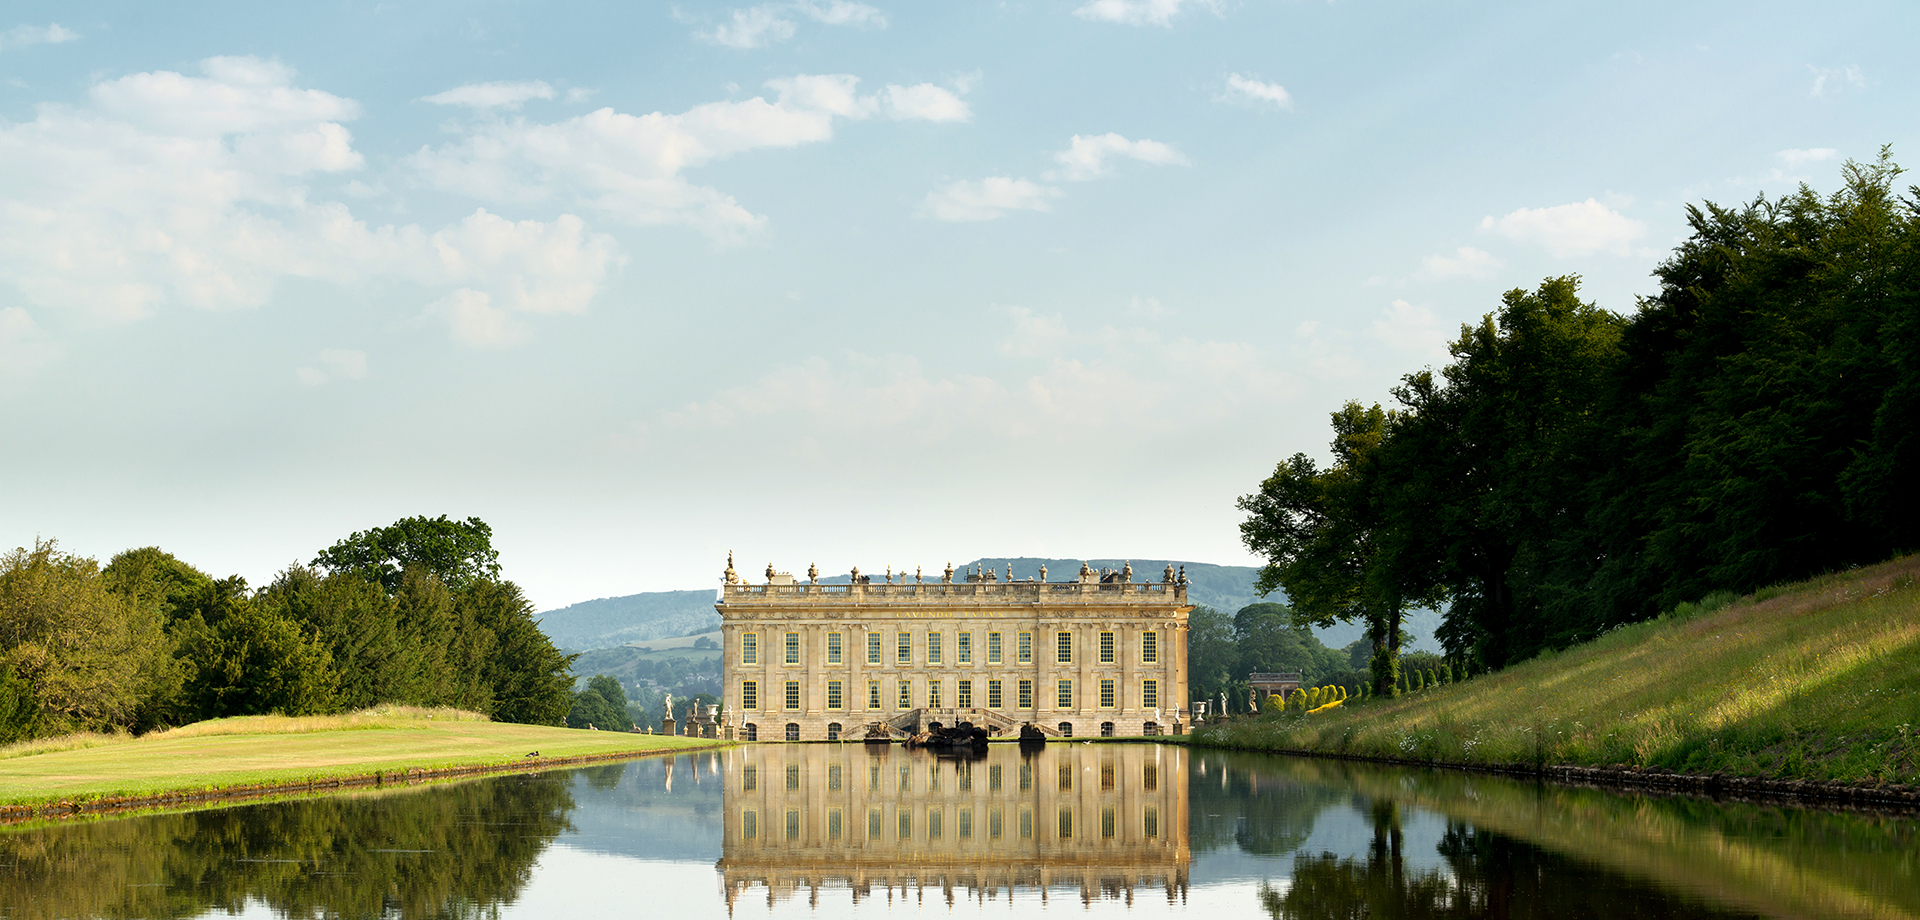 Contemporary Art and 'Chatsworth In Wartime'